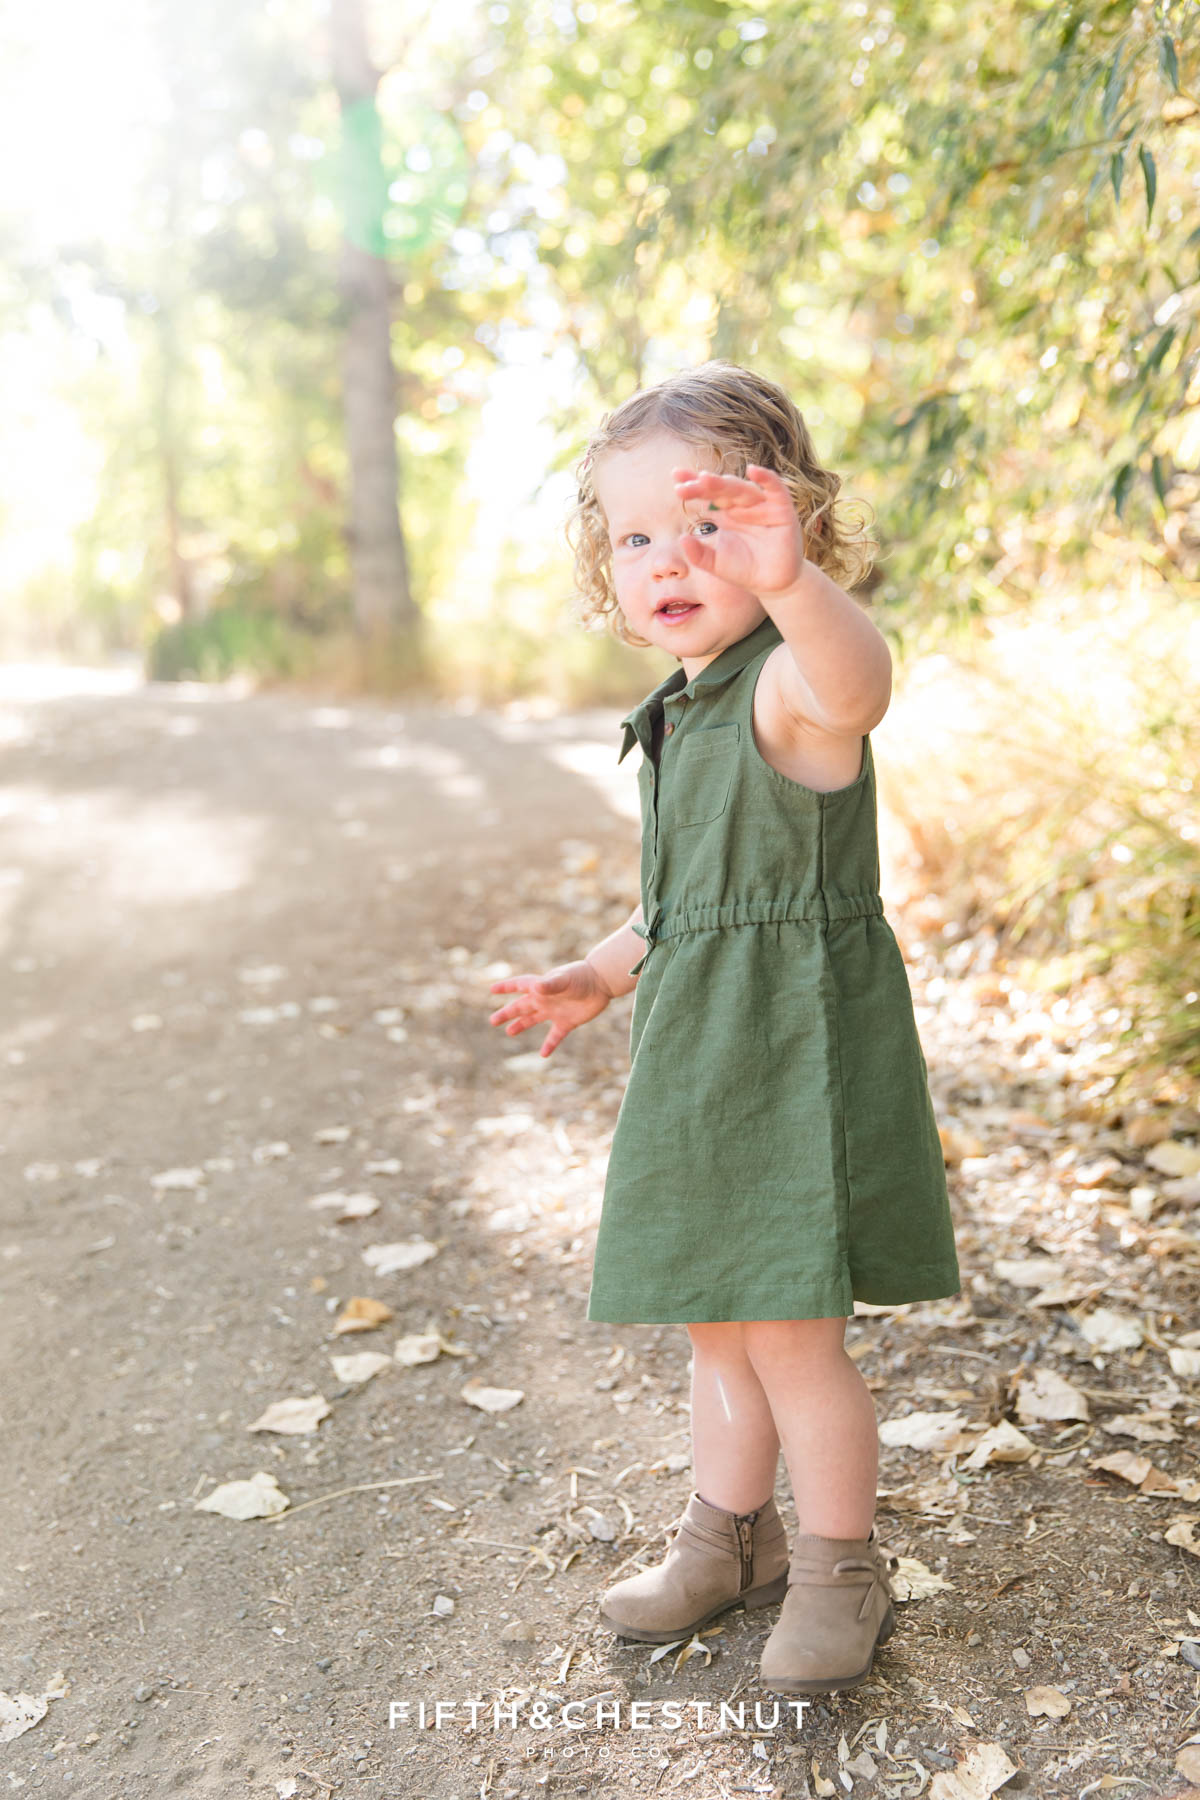 Toddler plays on path